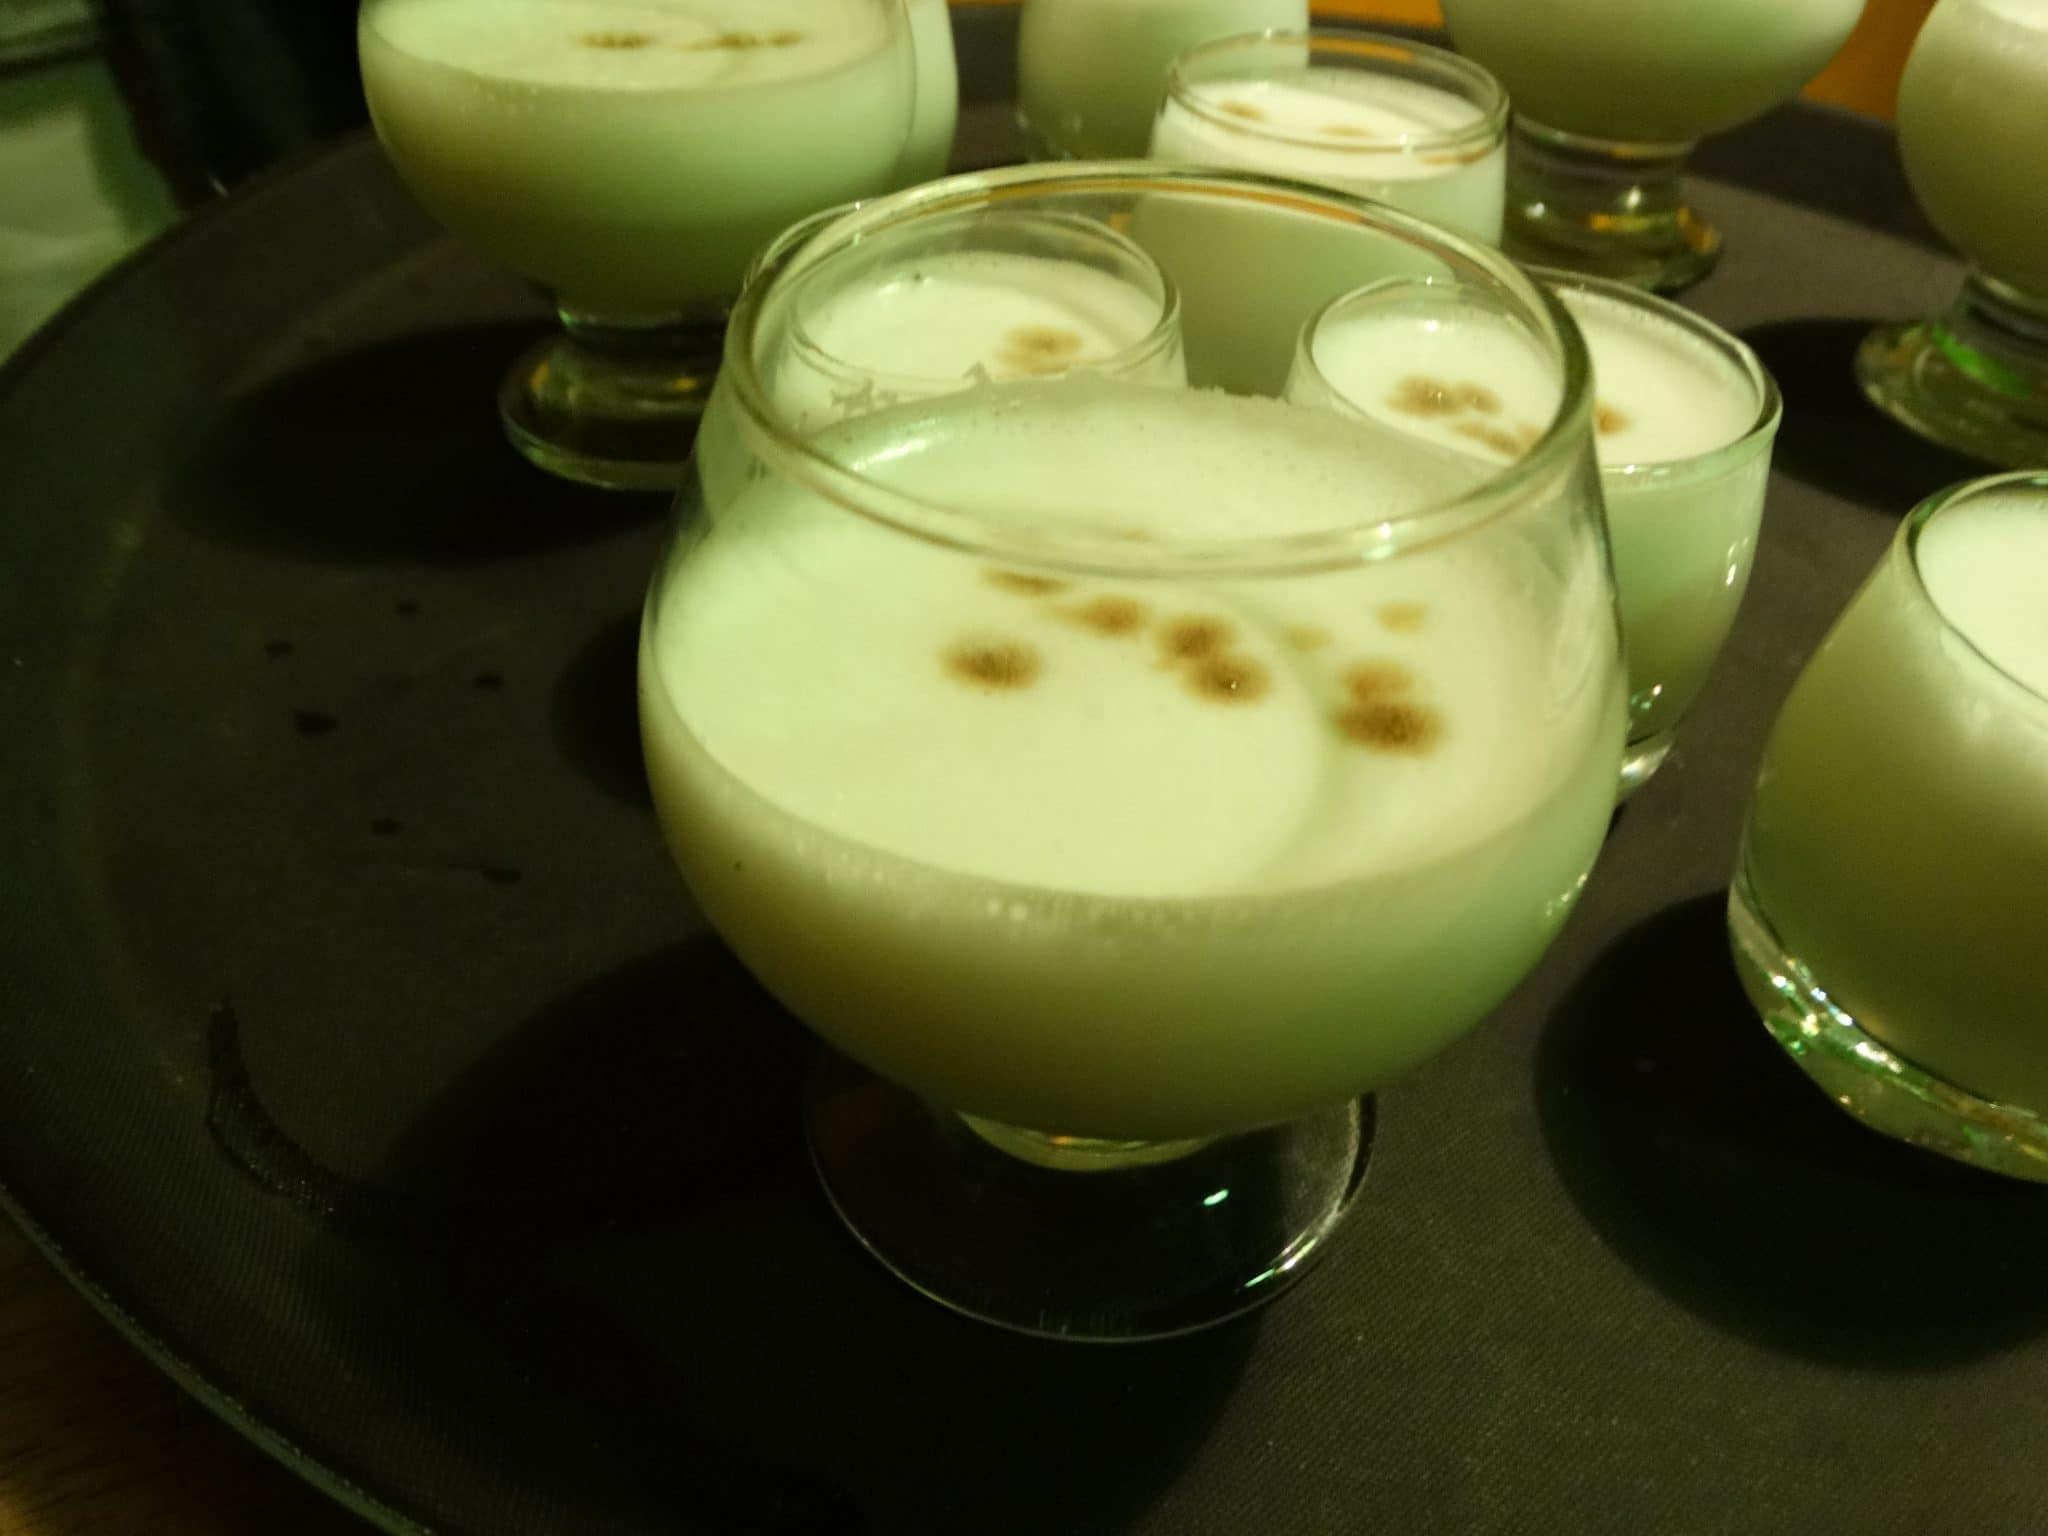 Pisco sour peru 39 s most famous cocktail check out the recipe - Pisco sour ingredientes ...